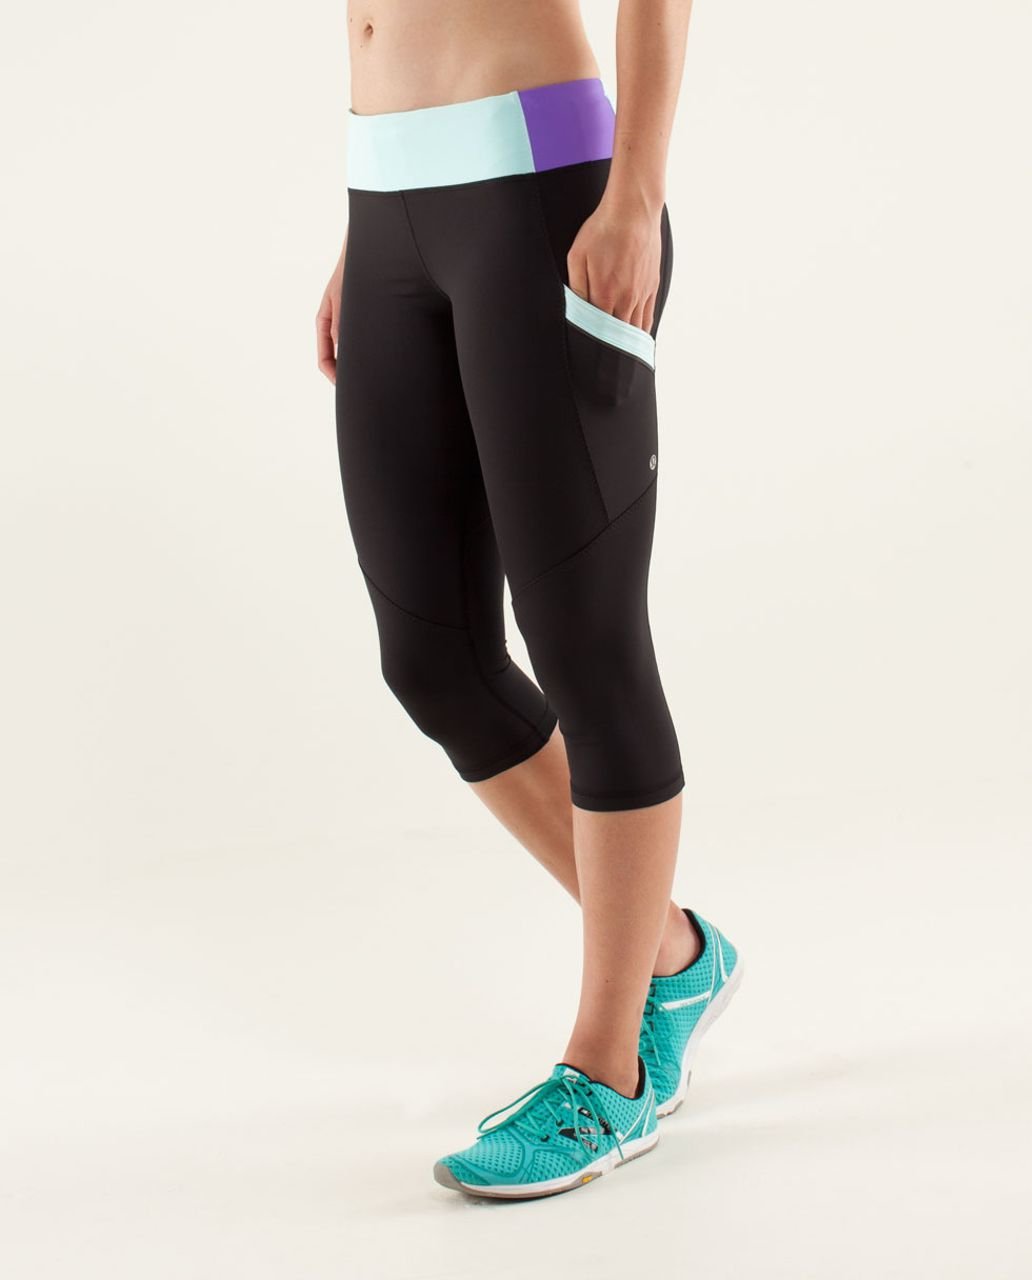 Lululemon Run:  Mod Moves Crop - Black / Aquamarine / Power Purple